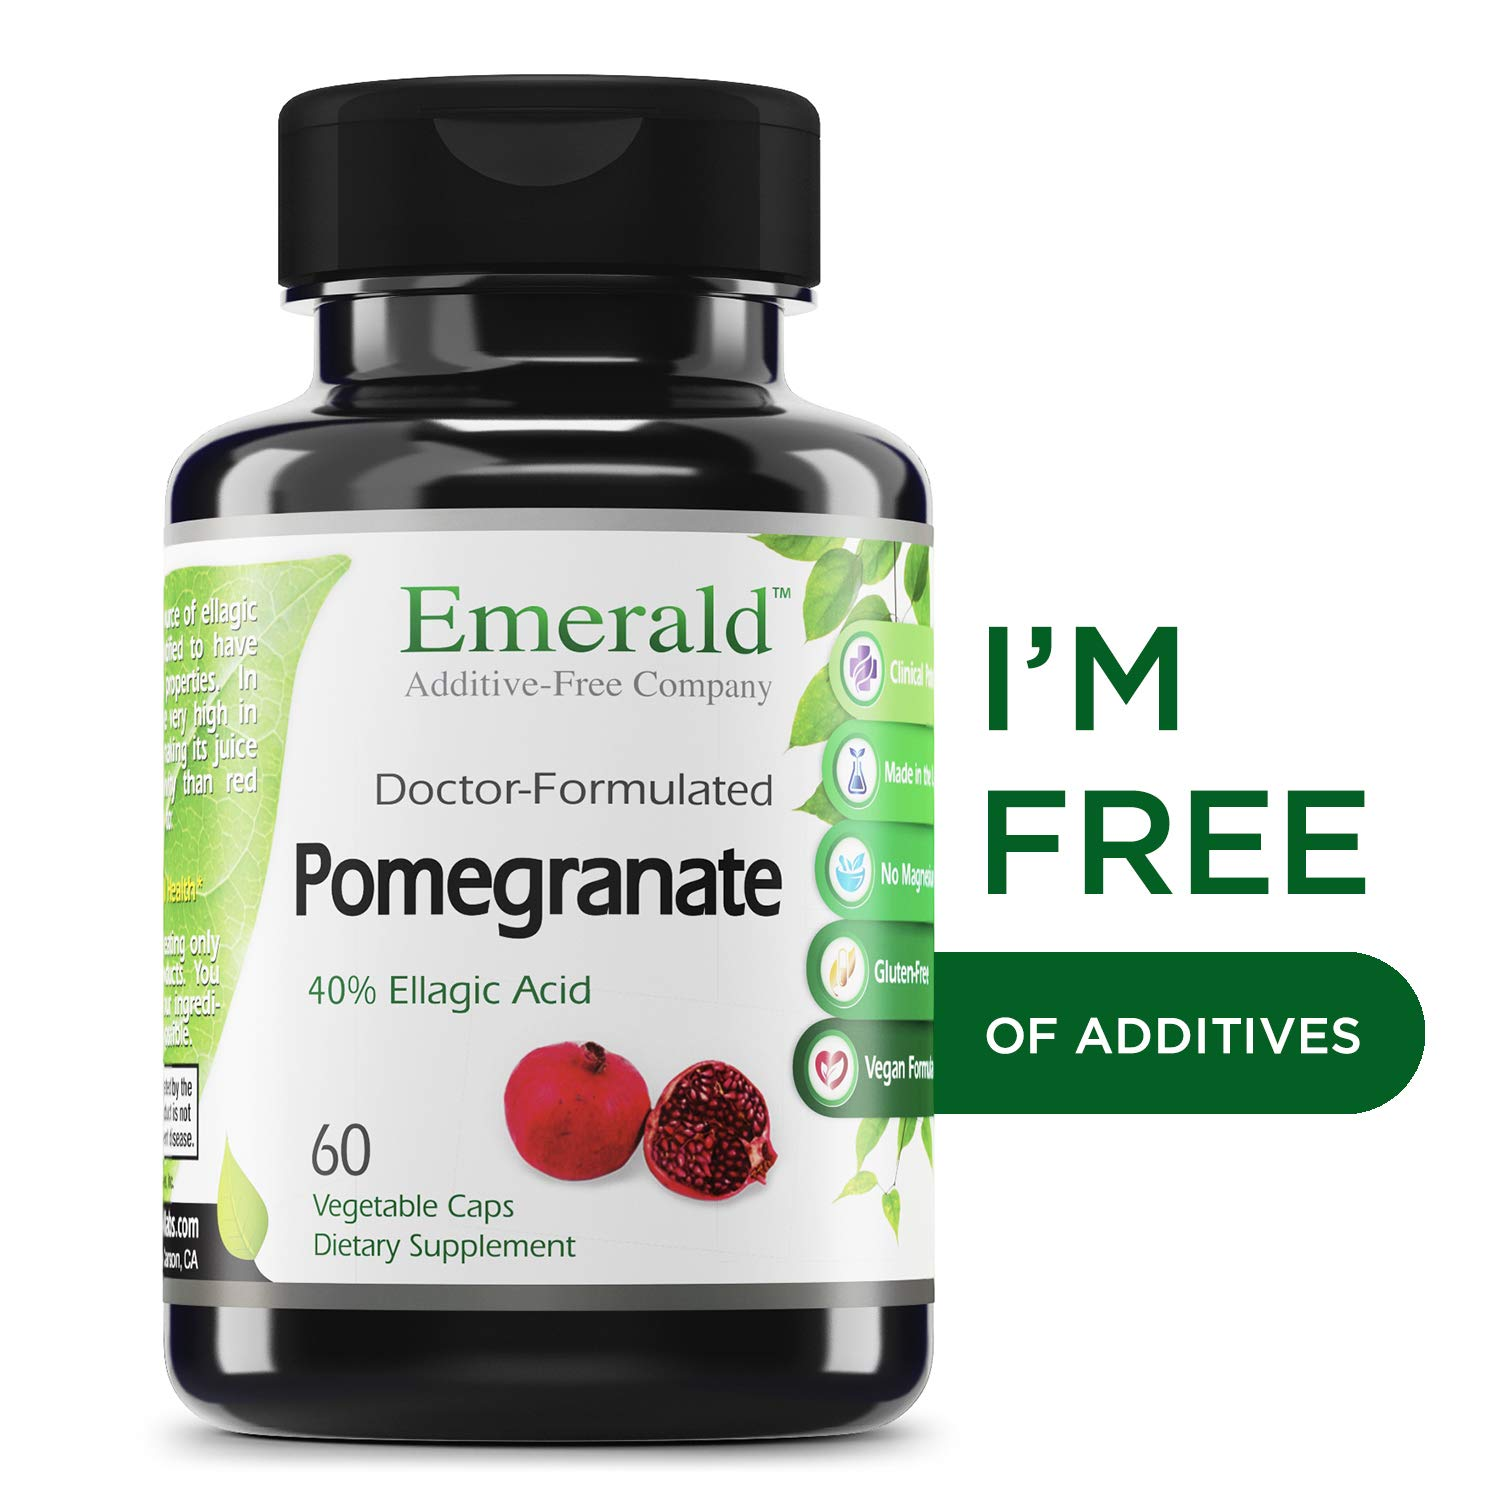 Pomegranate - Supports Heart Health, Promotes Good Cholesterol & Artery Health, Potent Antioxidant, Immune System Support - Emerald Laboratories (Fruitrients) - 60 Vegetable Capsules